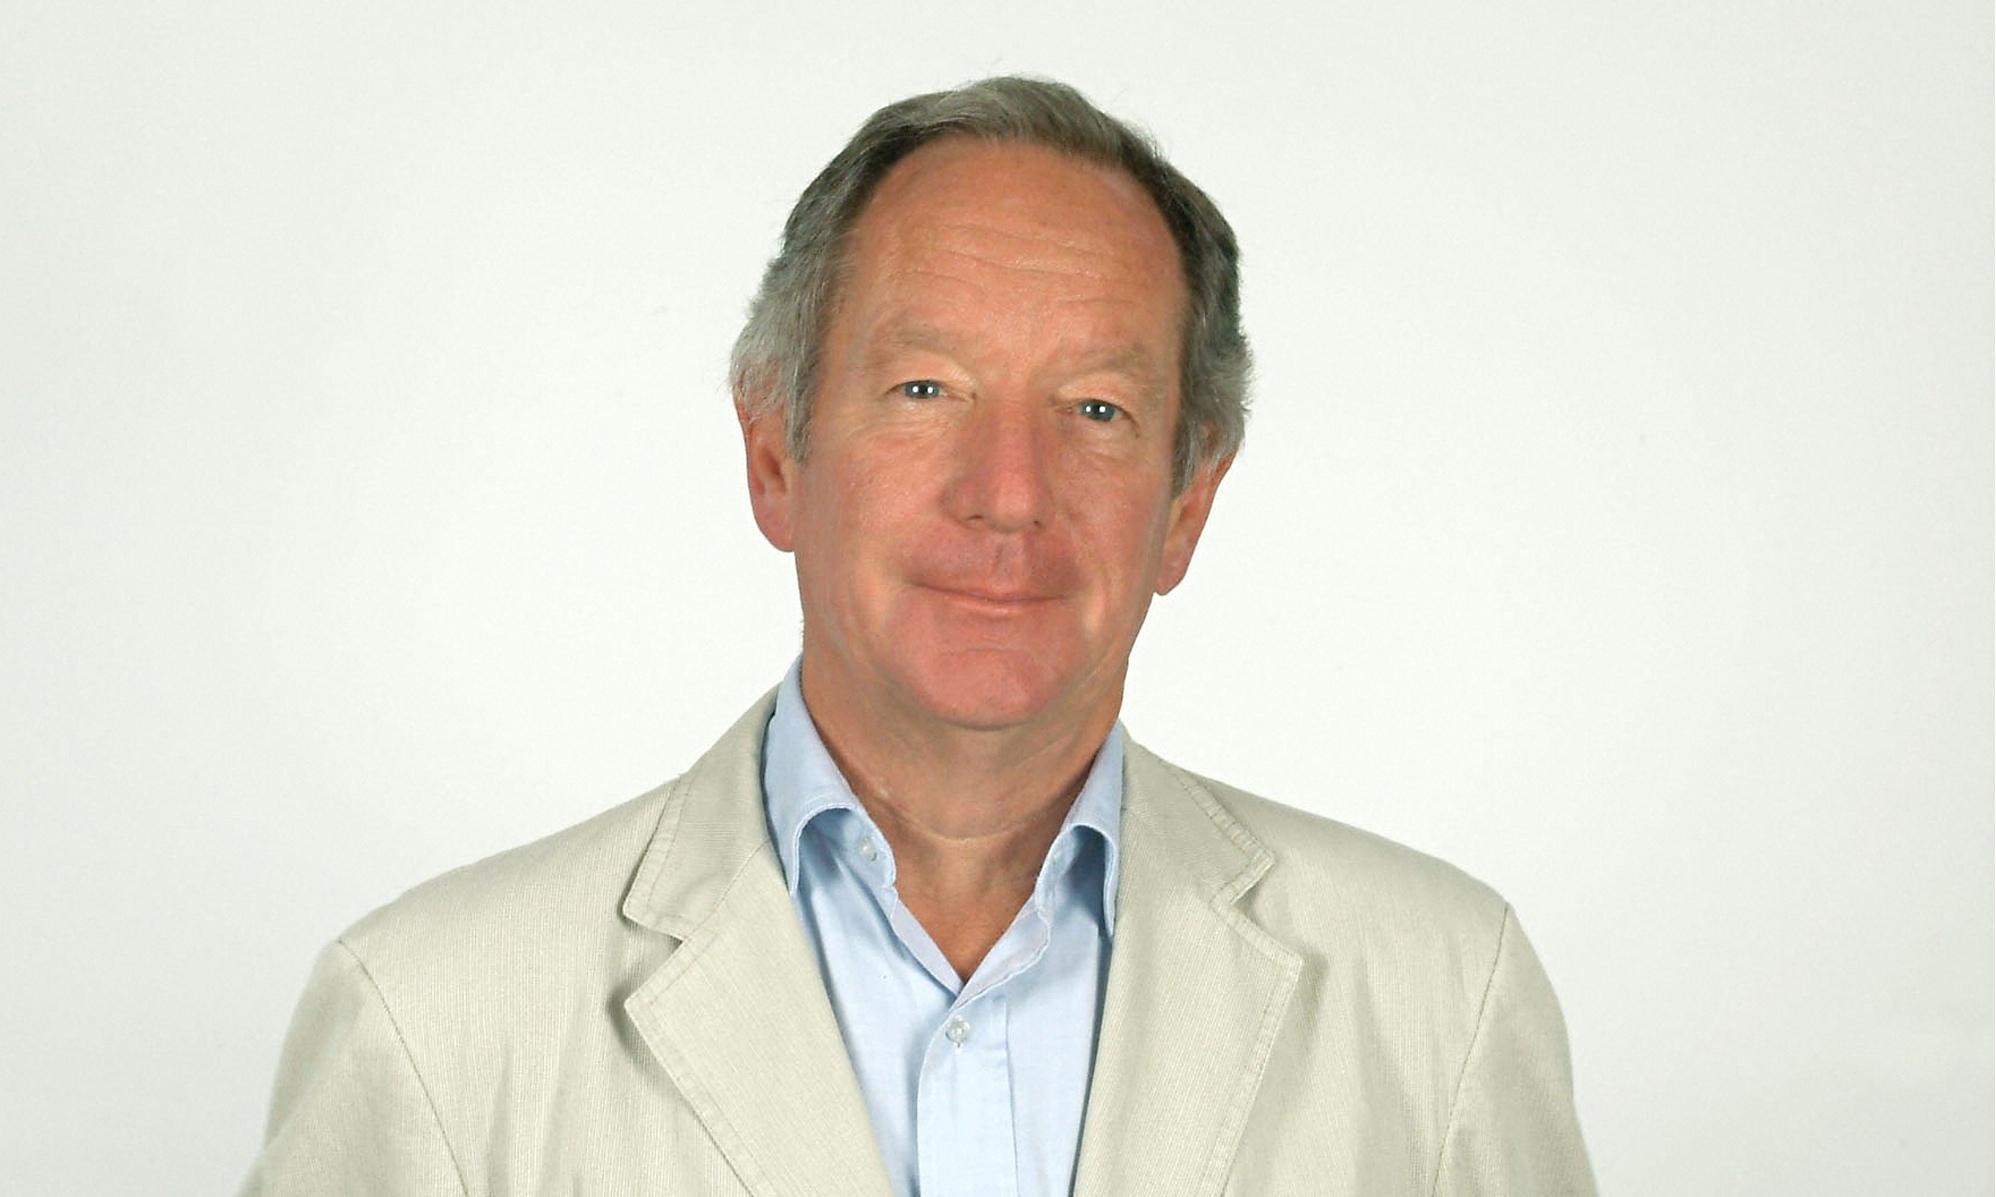 michael buerk how tall